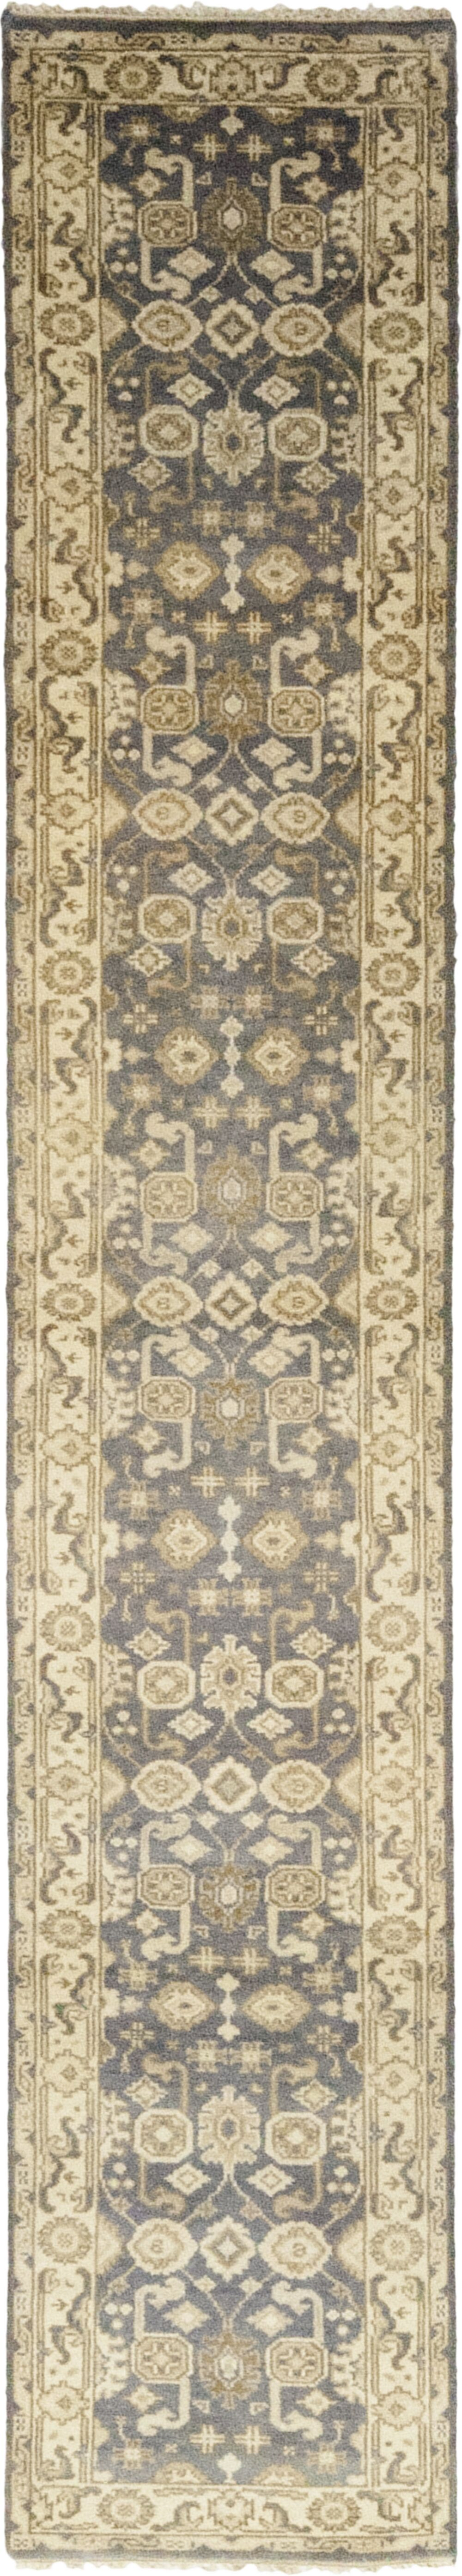 One-of-a-Kind Corrado Hand-Knotted Wool Beige/Gray Indoor Area Rug